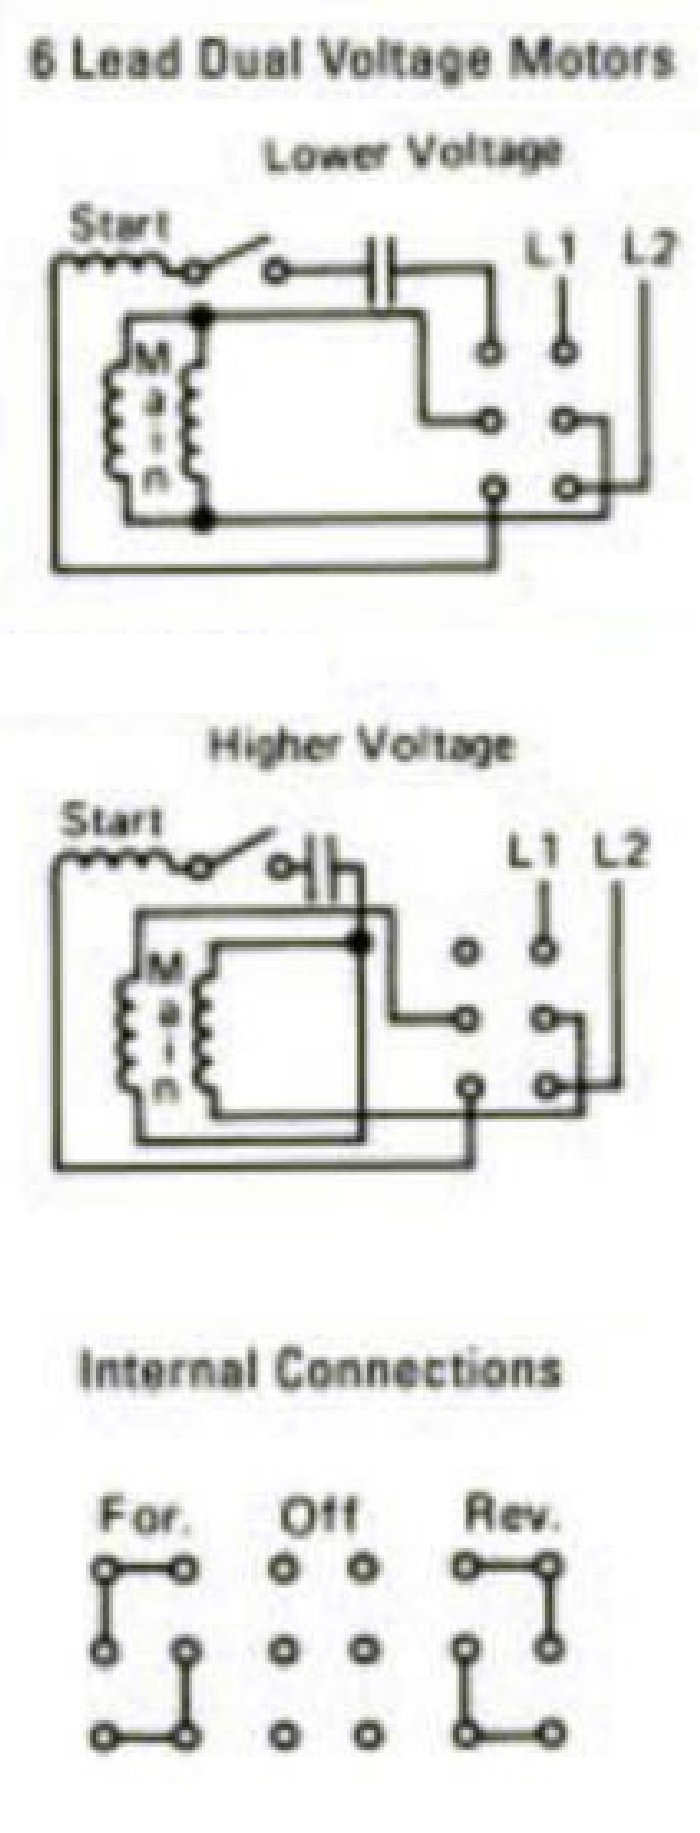 Marine Drum Switch Wiring Diagram Another Diagrams 110 Volt For Ac Boat Lift Need Help The Hull Truth Boating And Rh Thehulltruth Com Dayton Electric Motor Century Single Phase